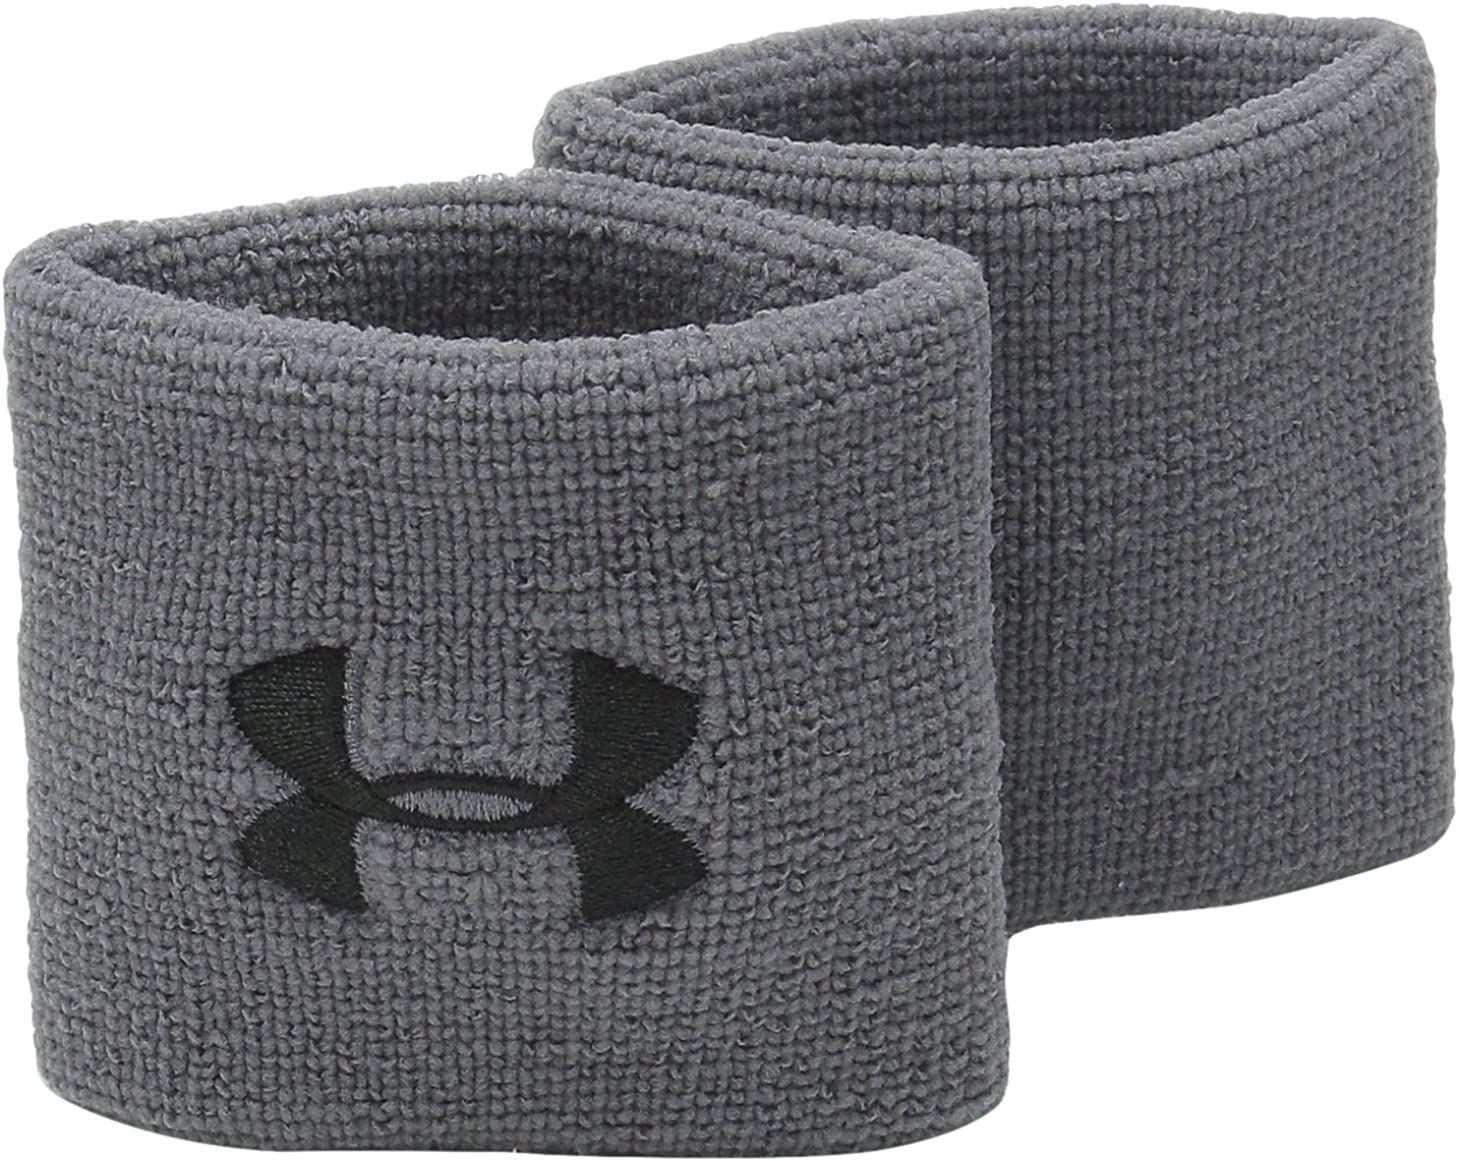 Under Armour Men's 3-inch Performance Wristband 2-Pack